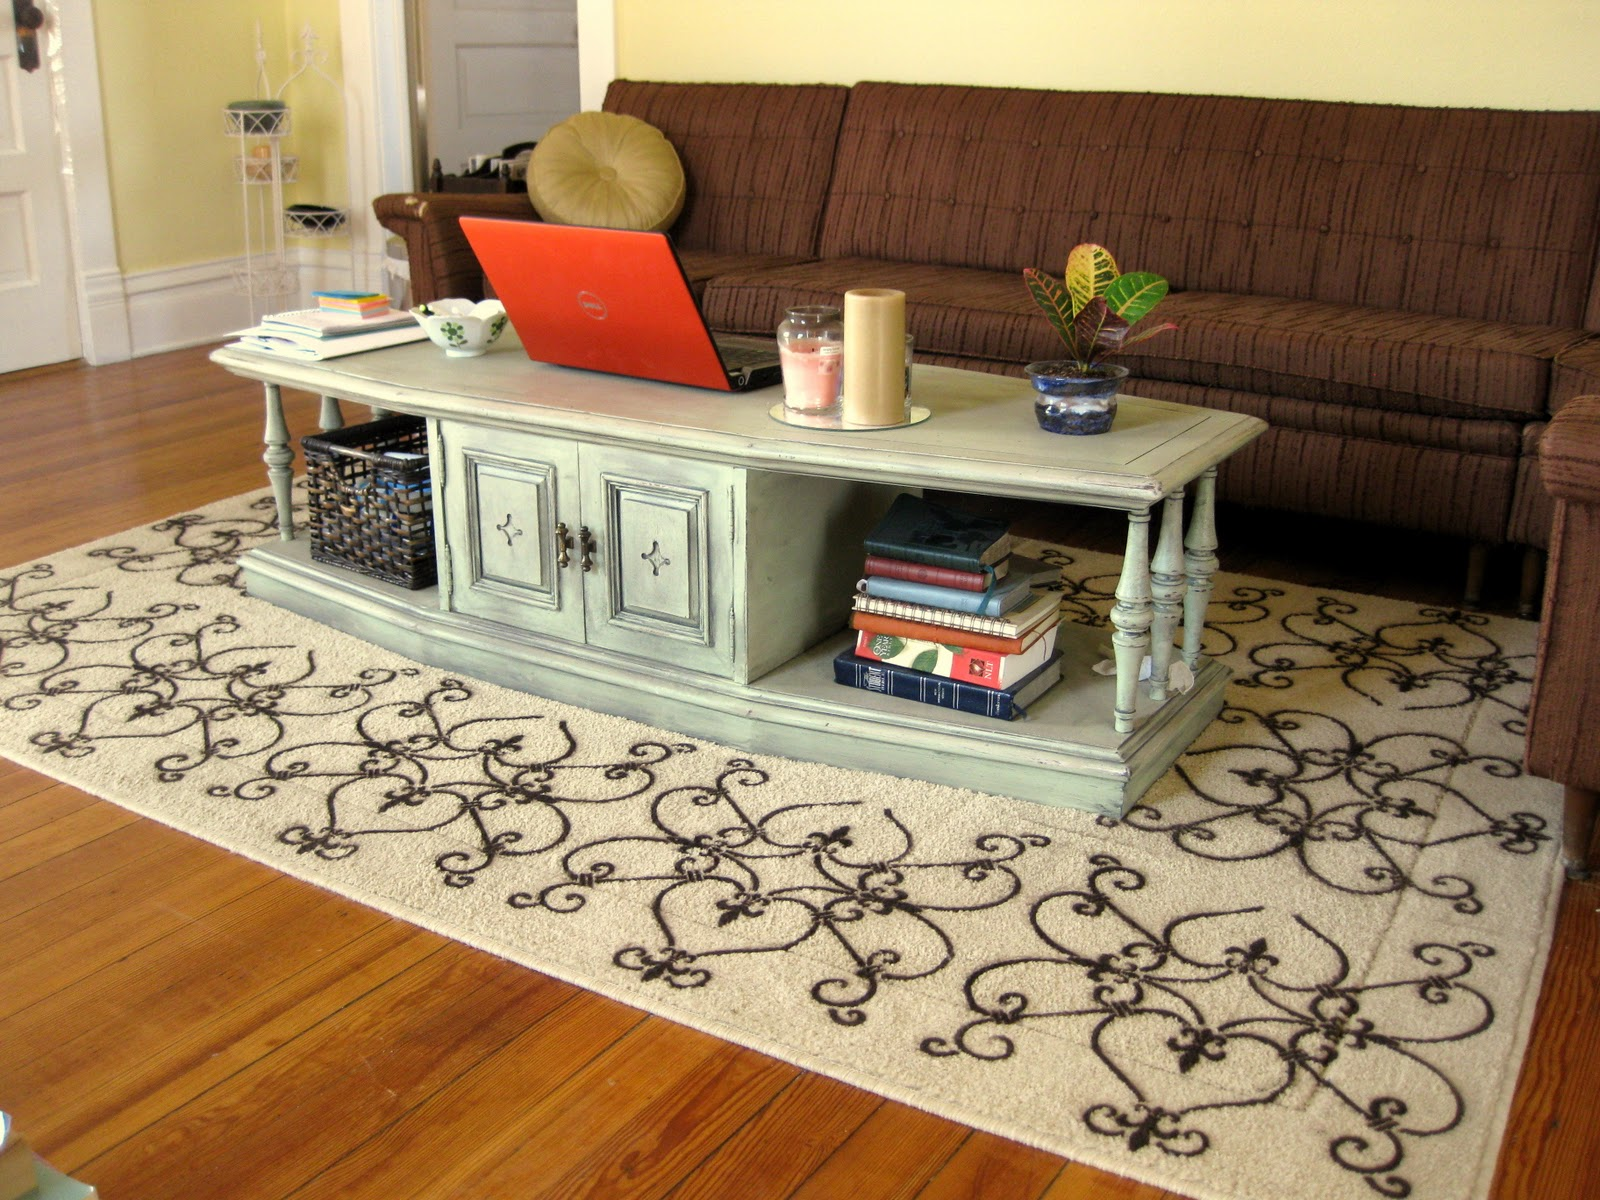 Diy stenciled rug makeover using spray paint reality for How to spray paint a room